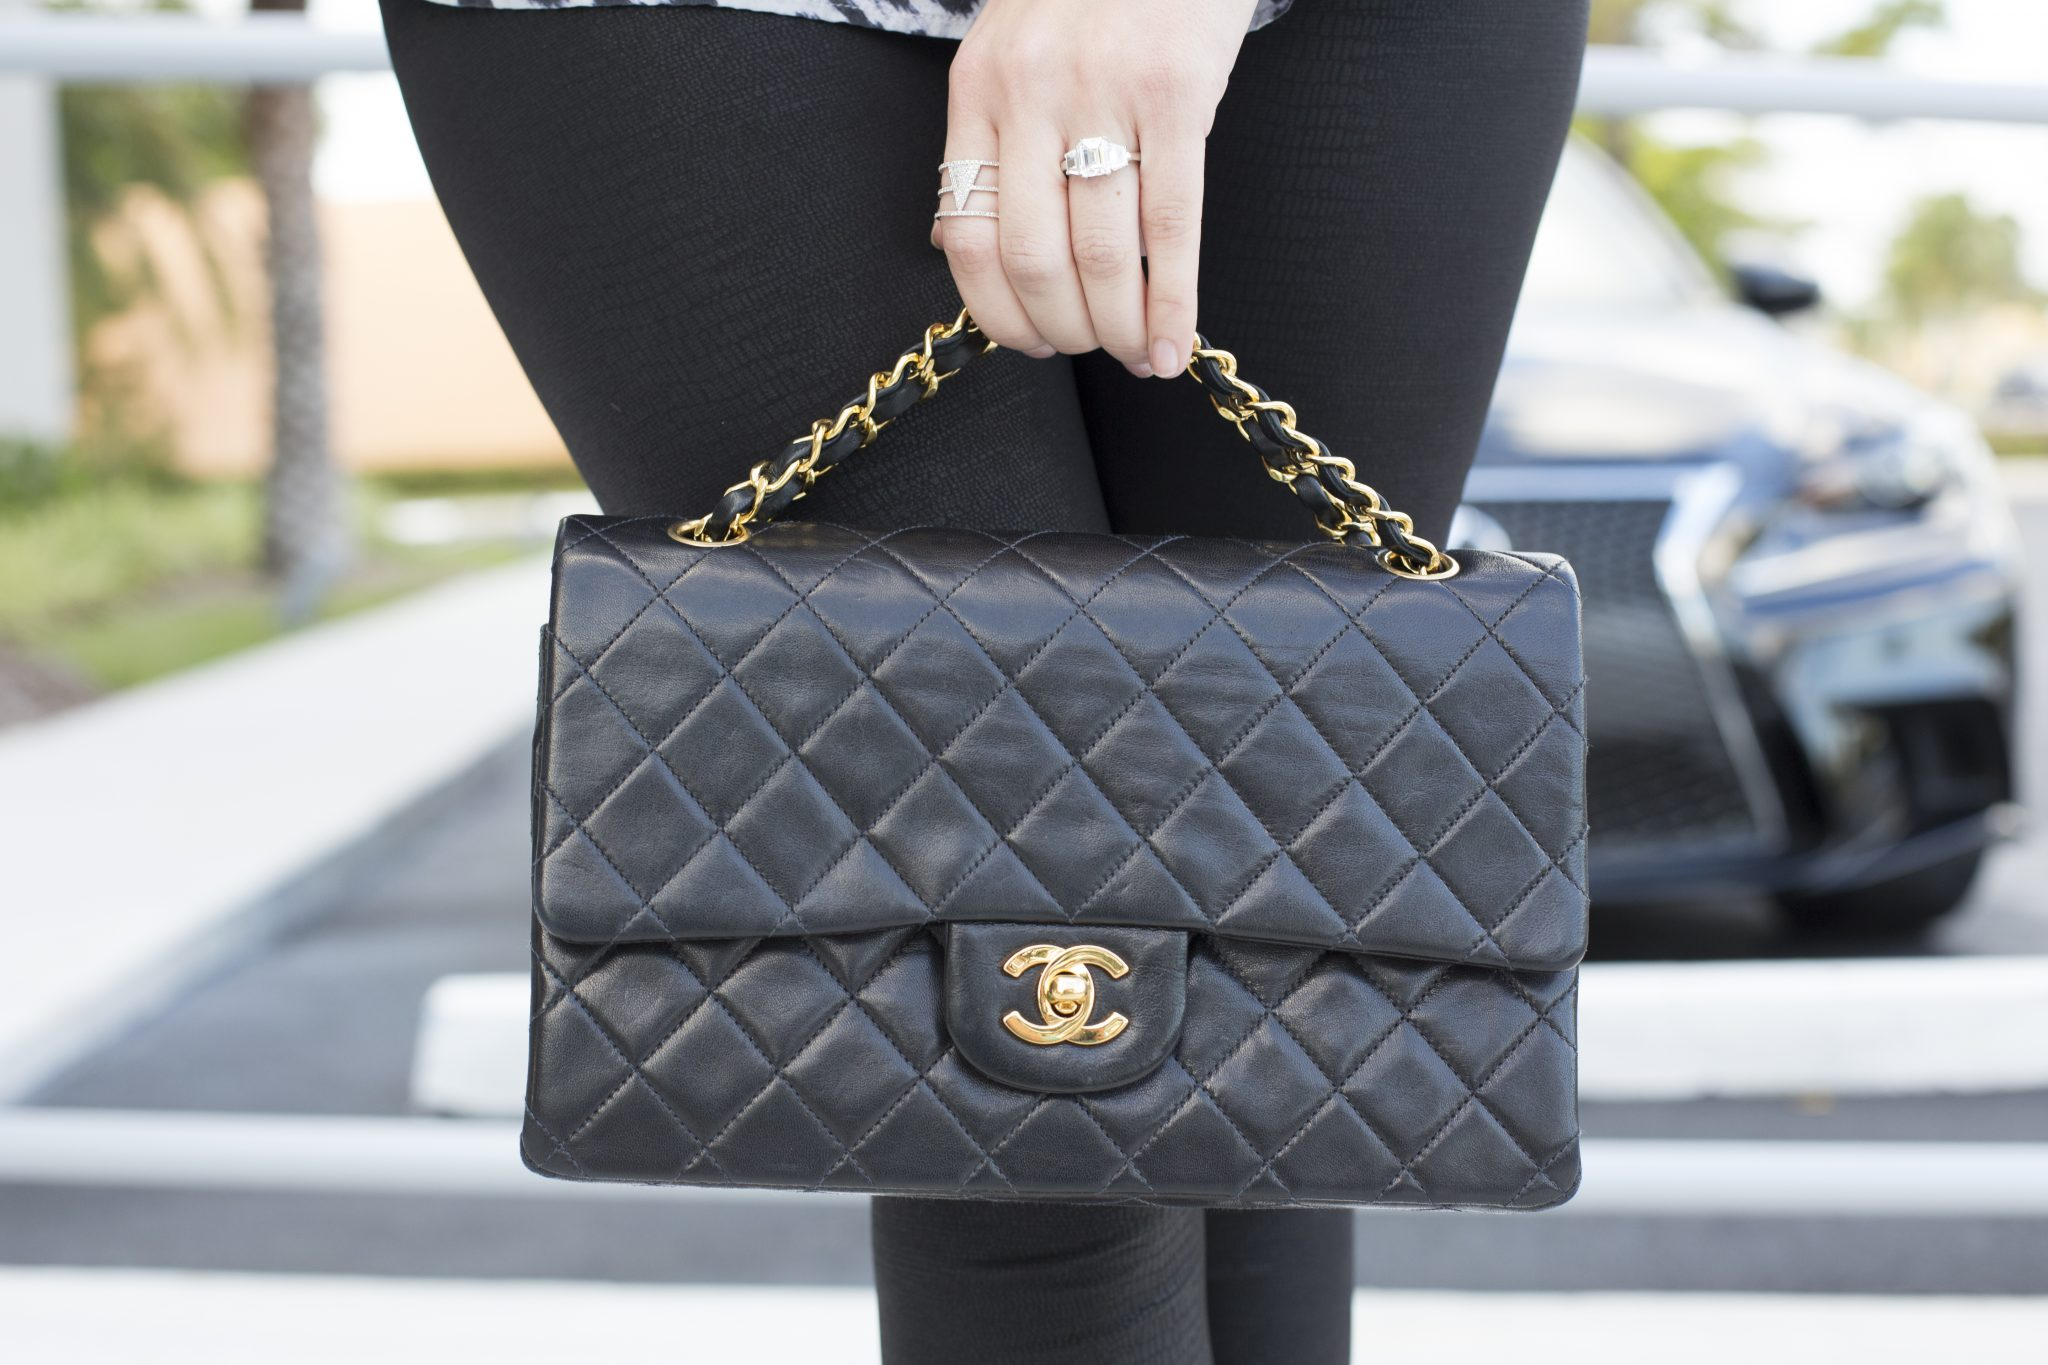 Chanel Classic Flap Bag Boca Raton Pre-owned